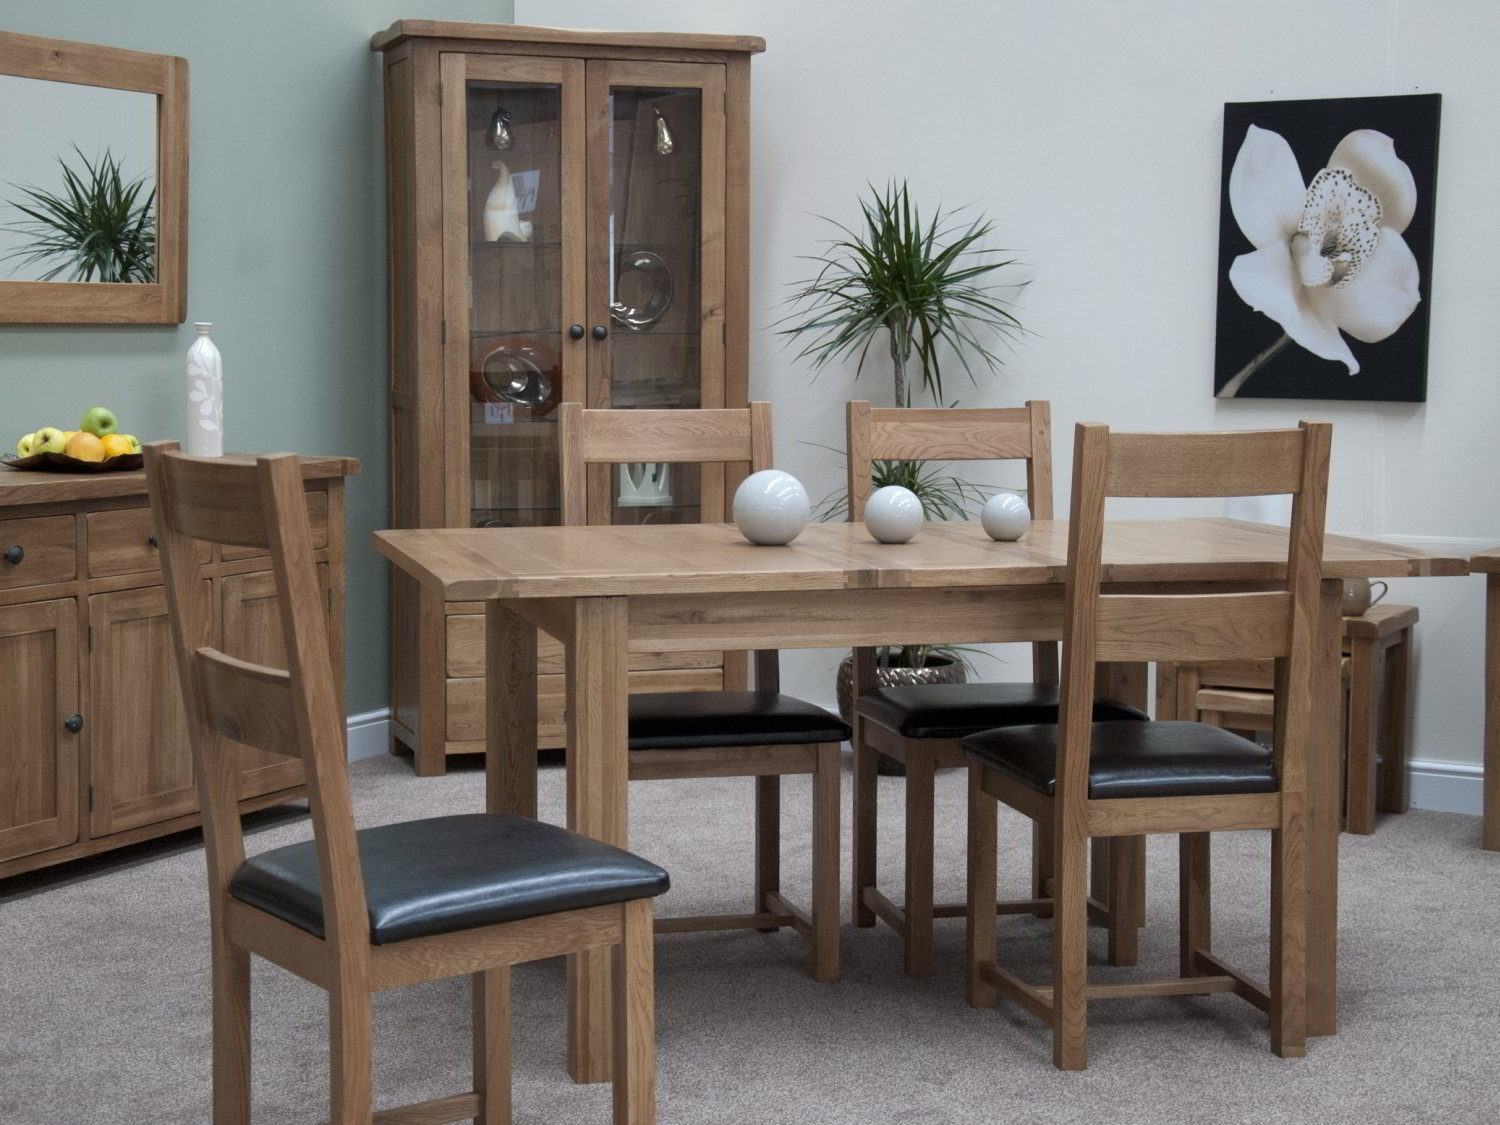 Sherwood Oak Large Extending Dining Table - mm. The Sherwood Oak furniture range is a substantial, high quality collection, which would bring a contemporary flourish to a multitude of interiors.